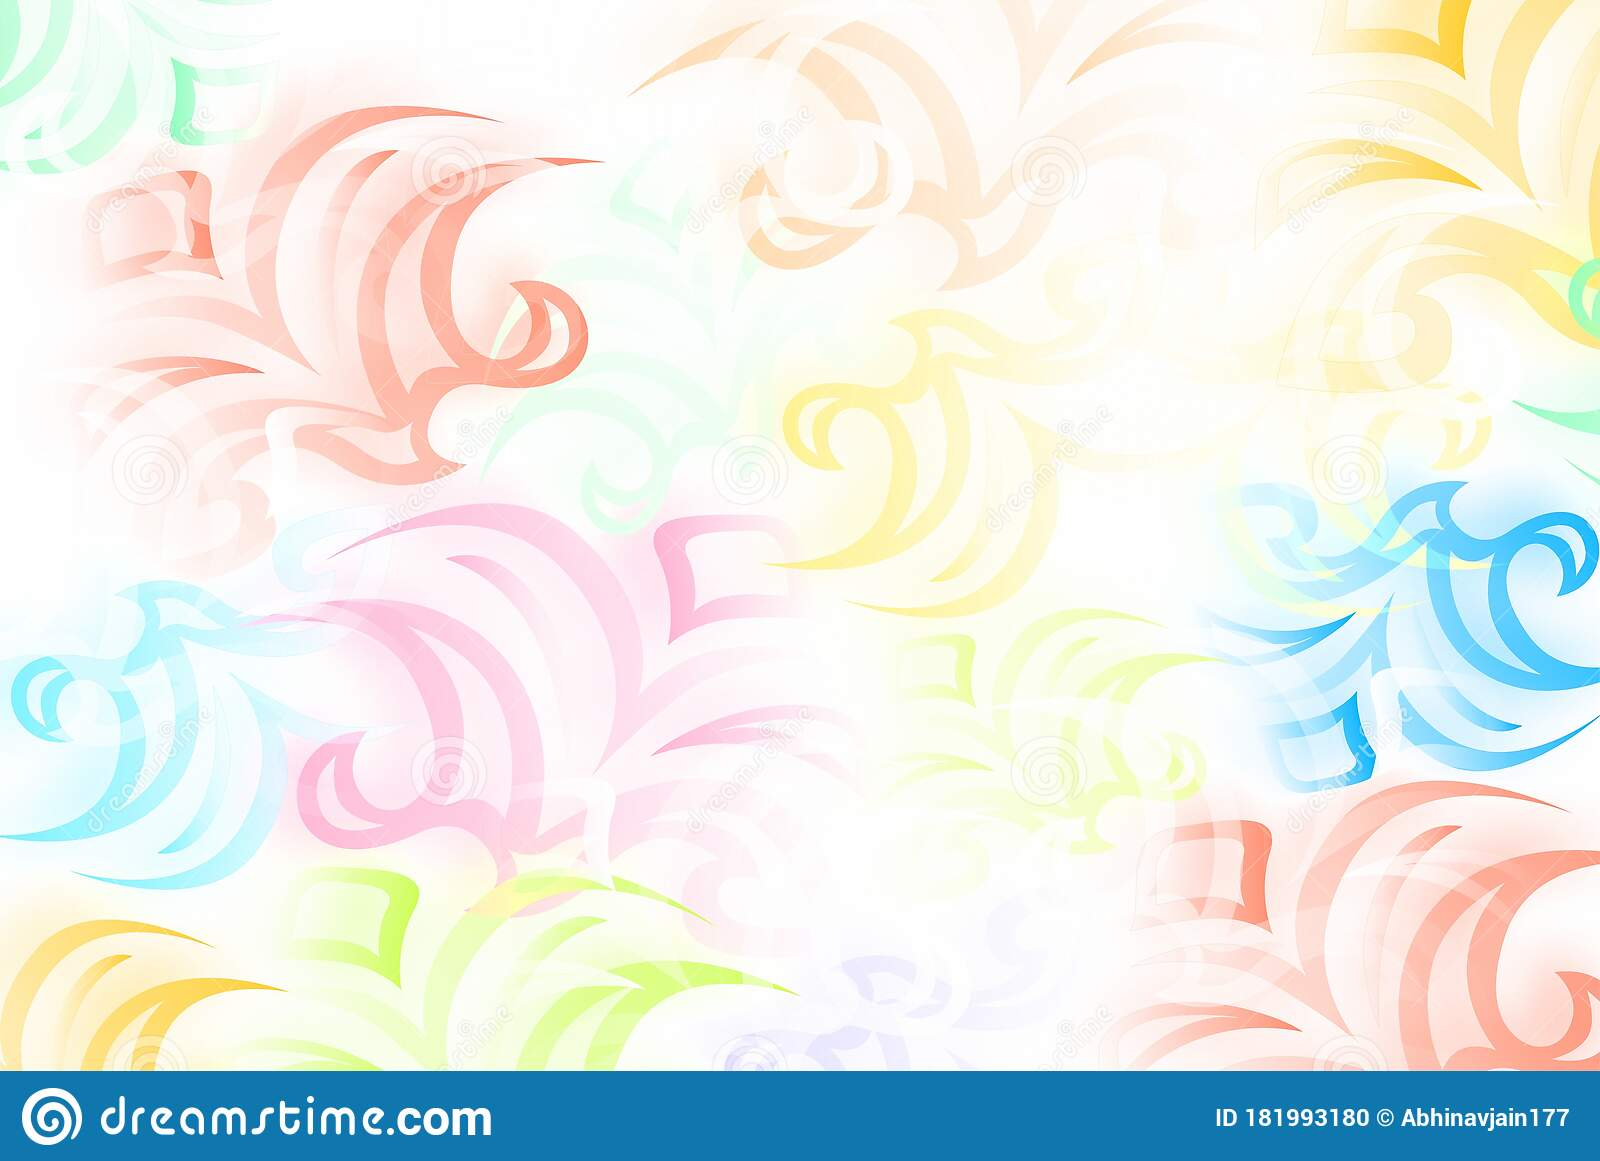 Abstract Bright Colorful Flowers Wallpaper Background In Vector Bright Glowing Colorful Background Wallpaper Stock Illustration Illustration Of Decoration Beautiful 181993180